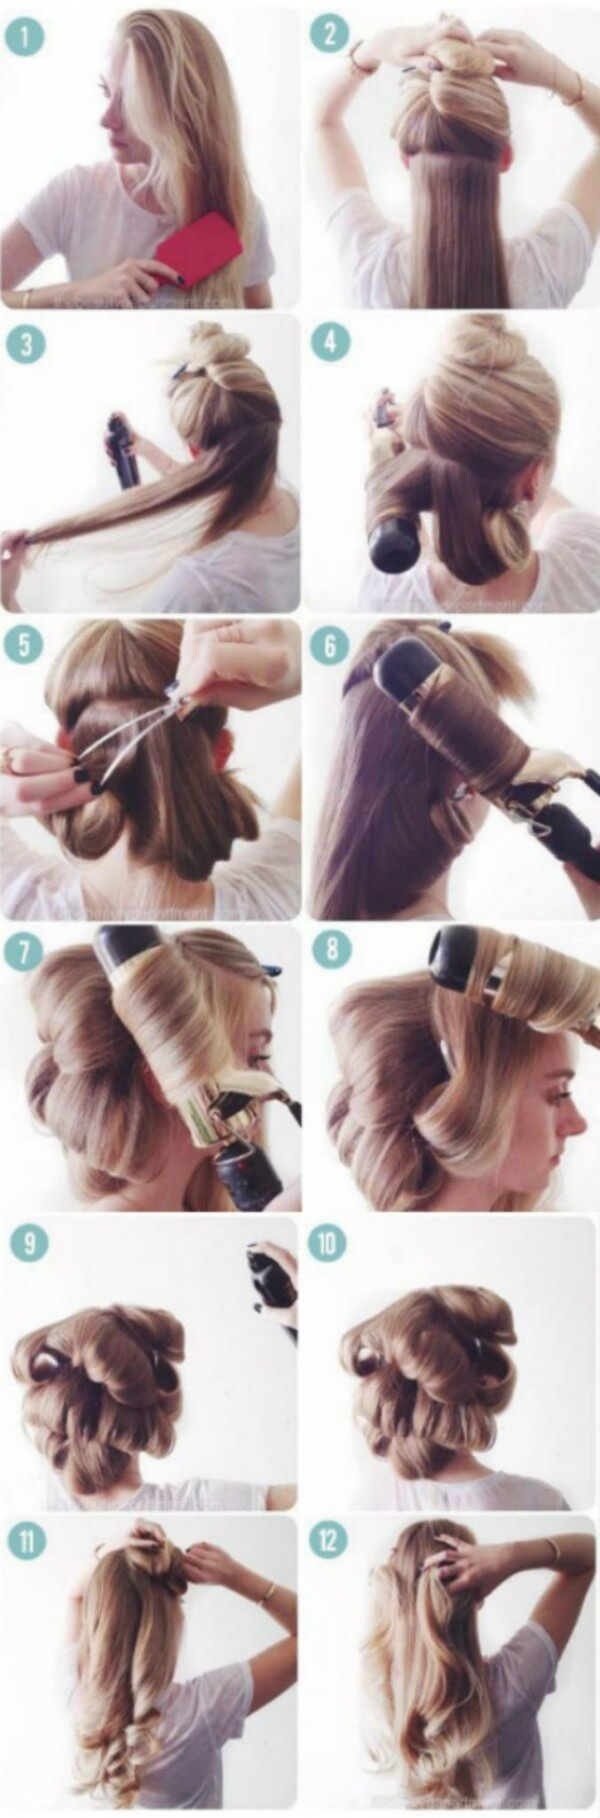 Large Curls learn how to Curl Your Hairs Step by Step Guide